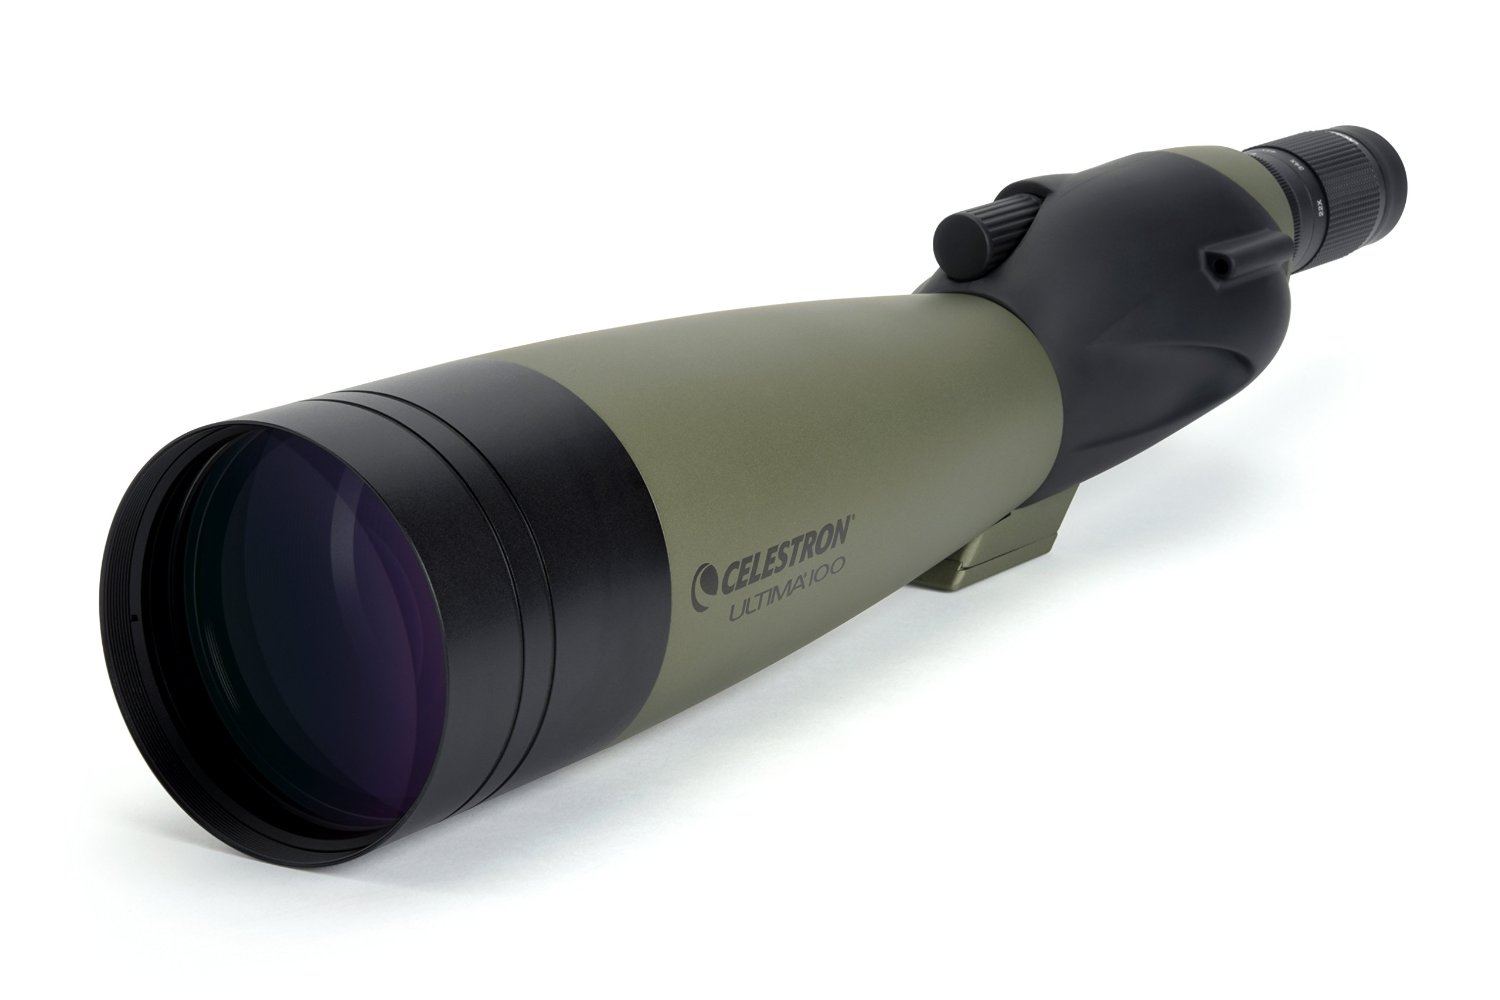 Celestron Spotting Scope Ultima 100 Straight